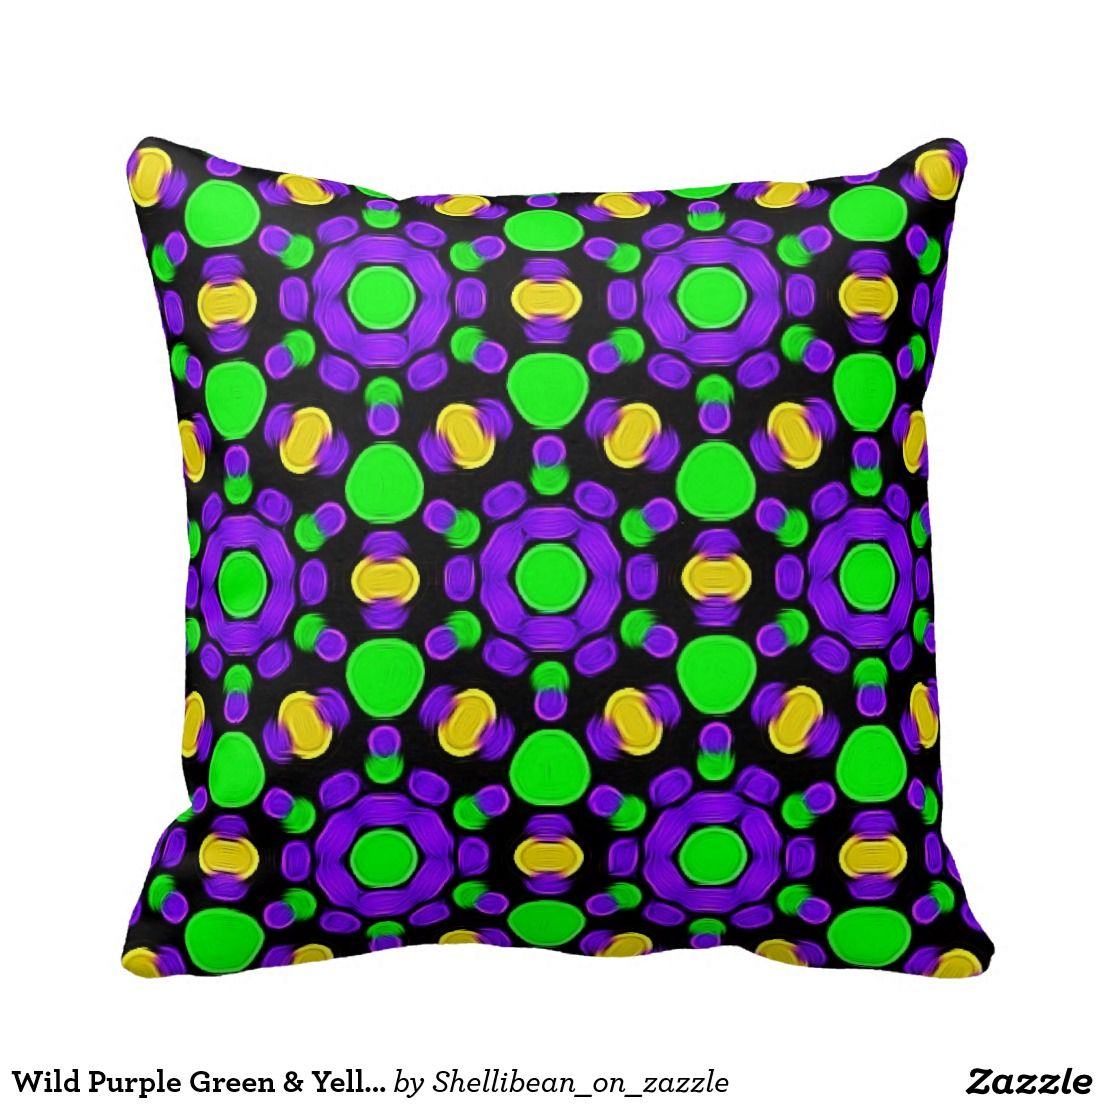 Wild purple green u yellow mosaic design throw pillow the zazzle